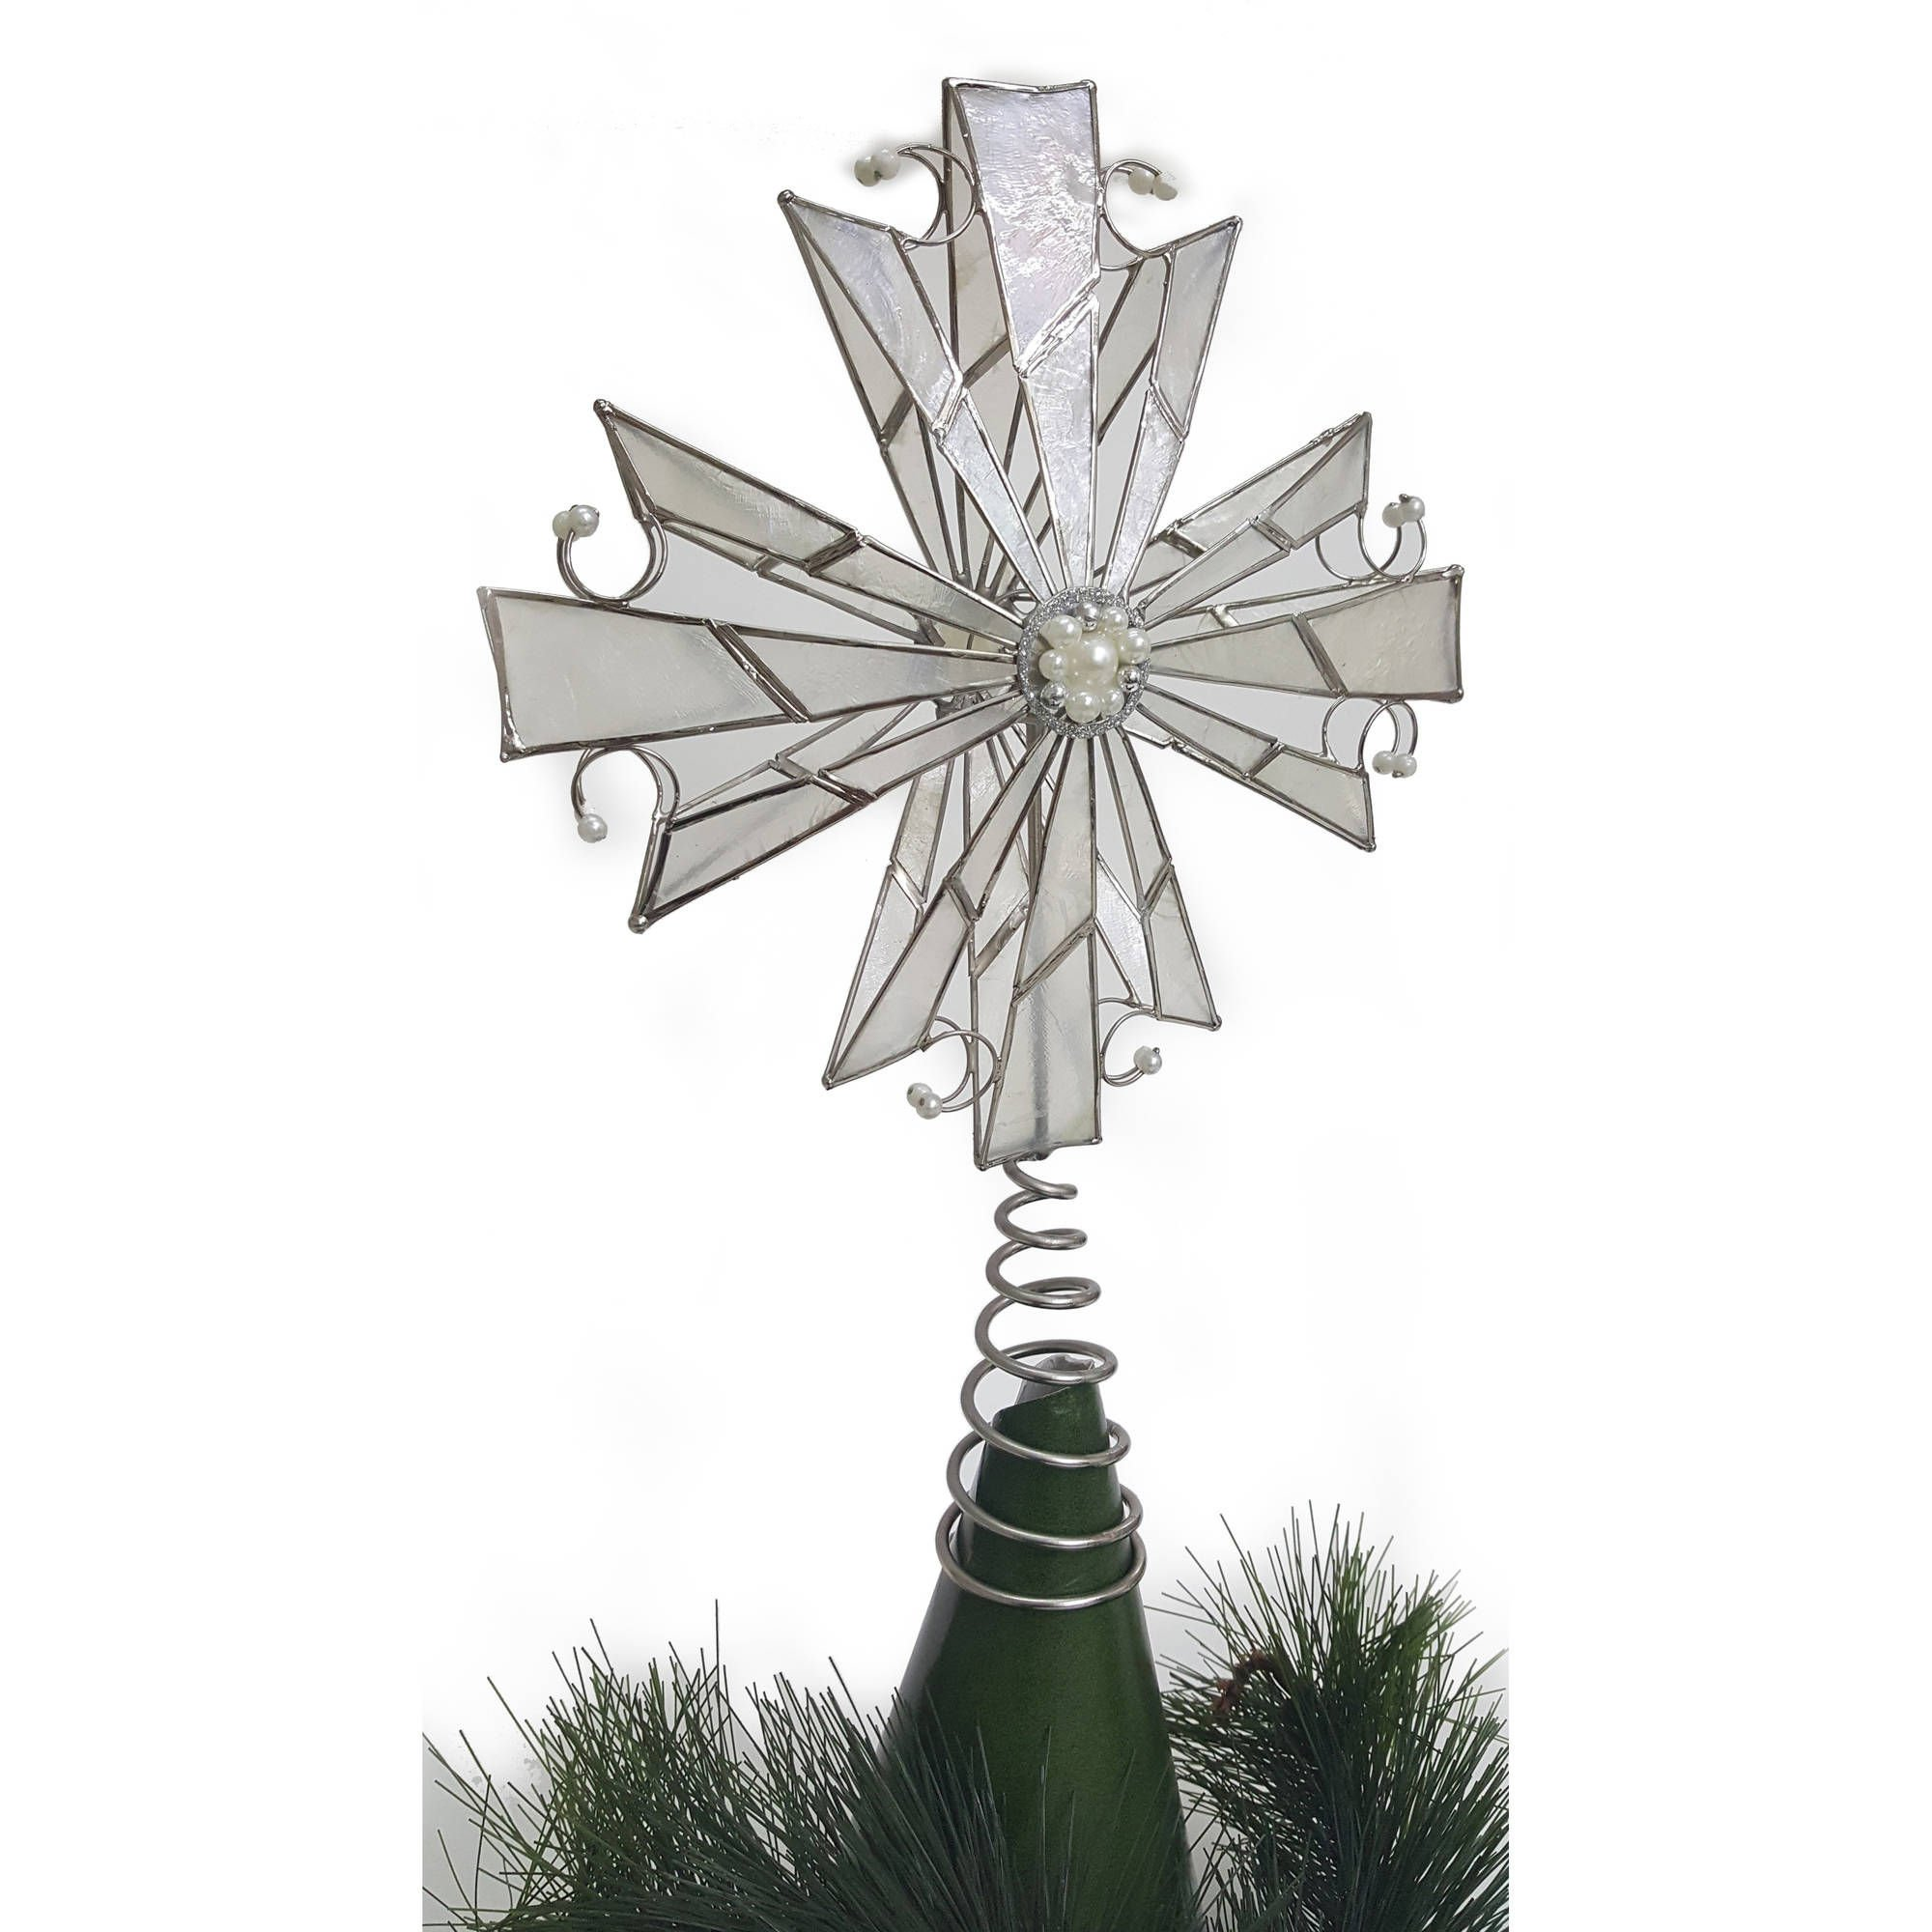 Capiz Shell, Pearlized Beads and Metal Tree Topper Silver and Natural 10.50 inches